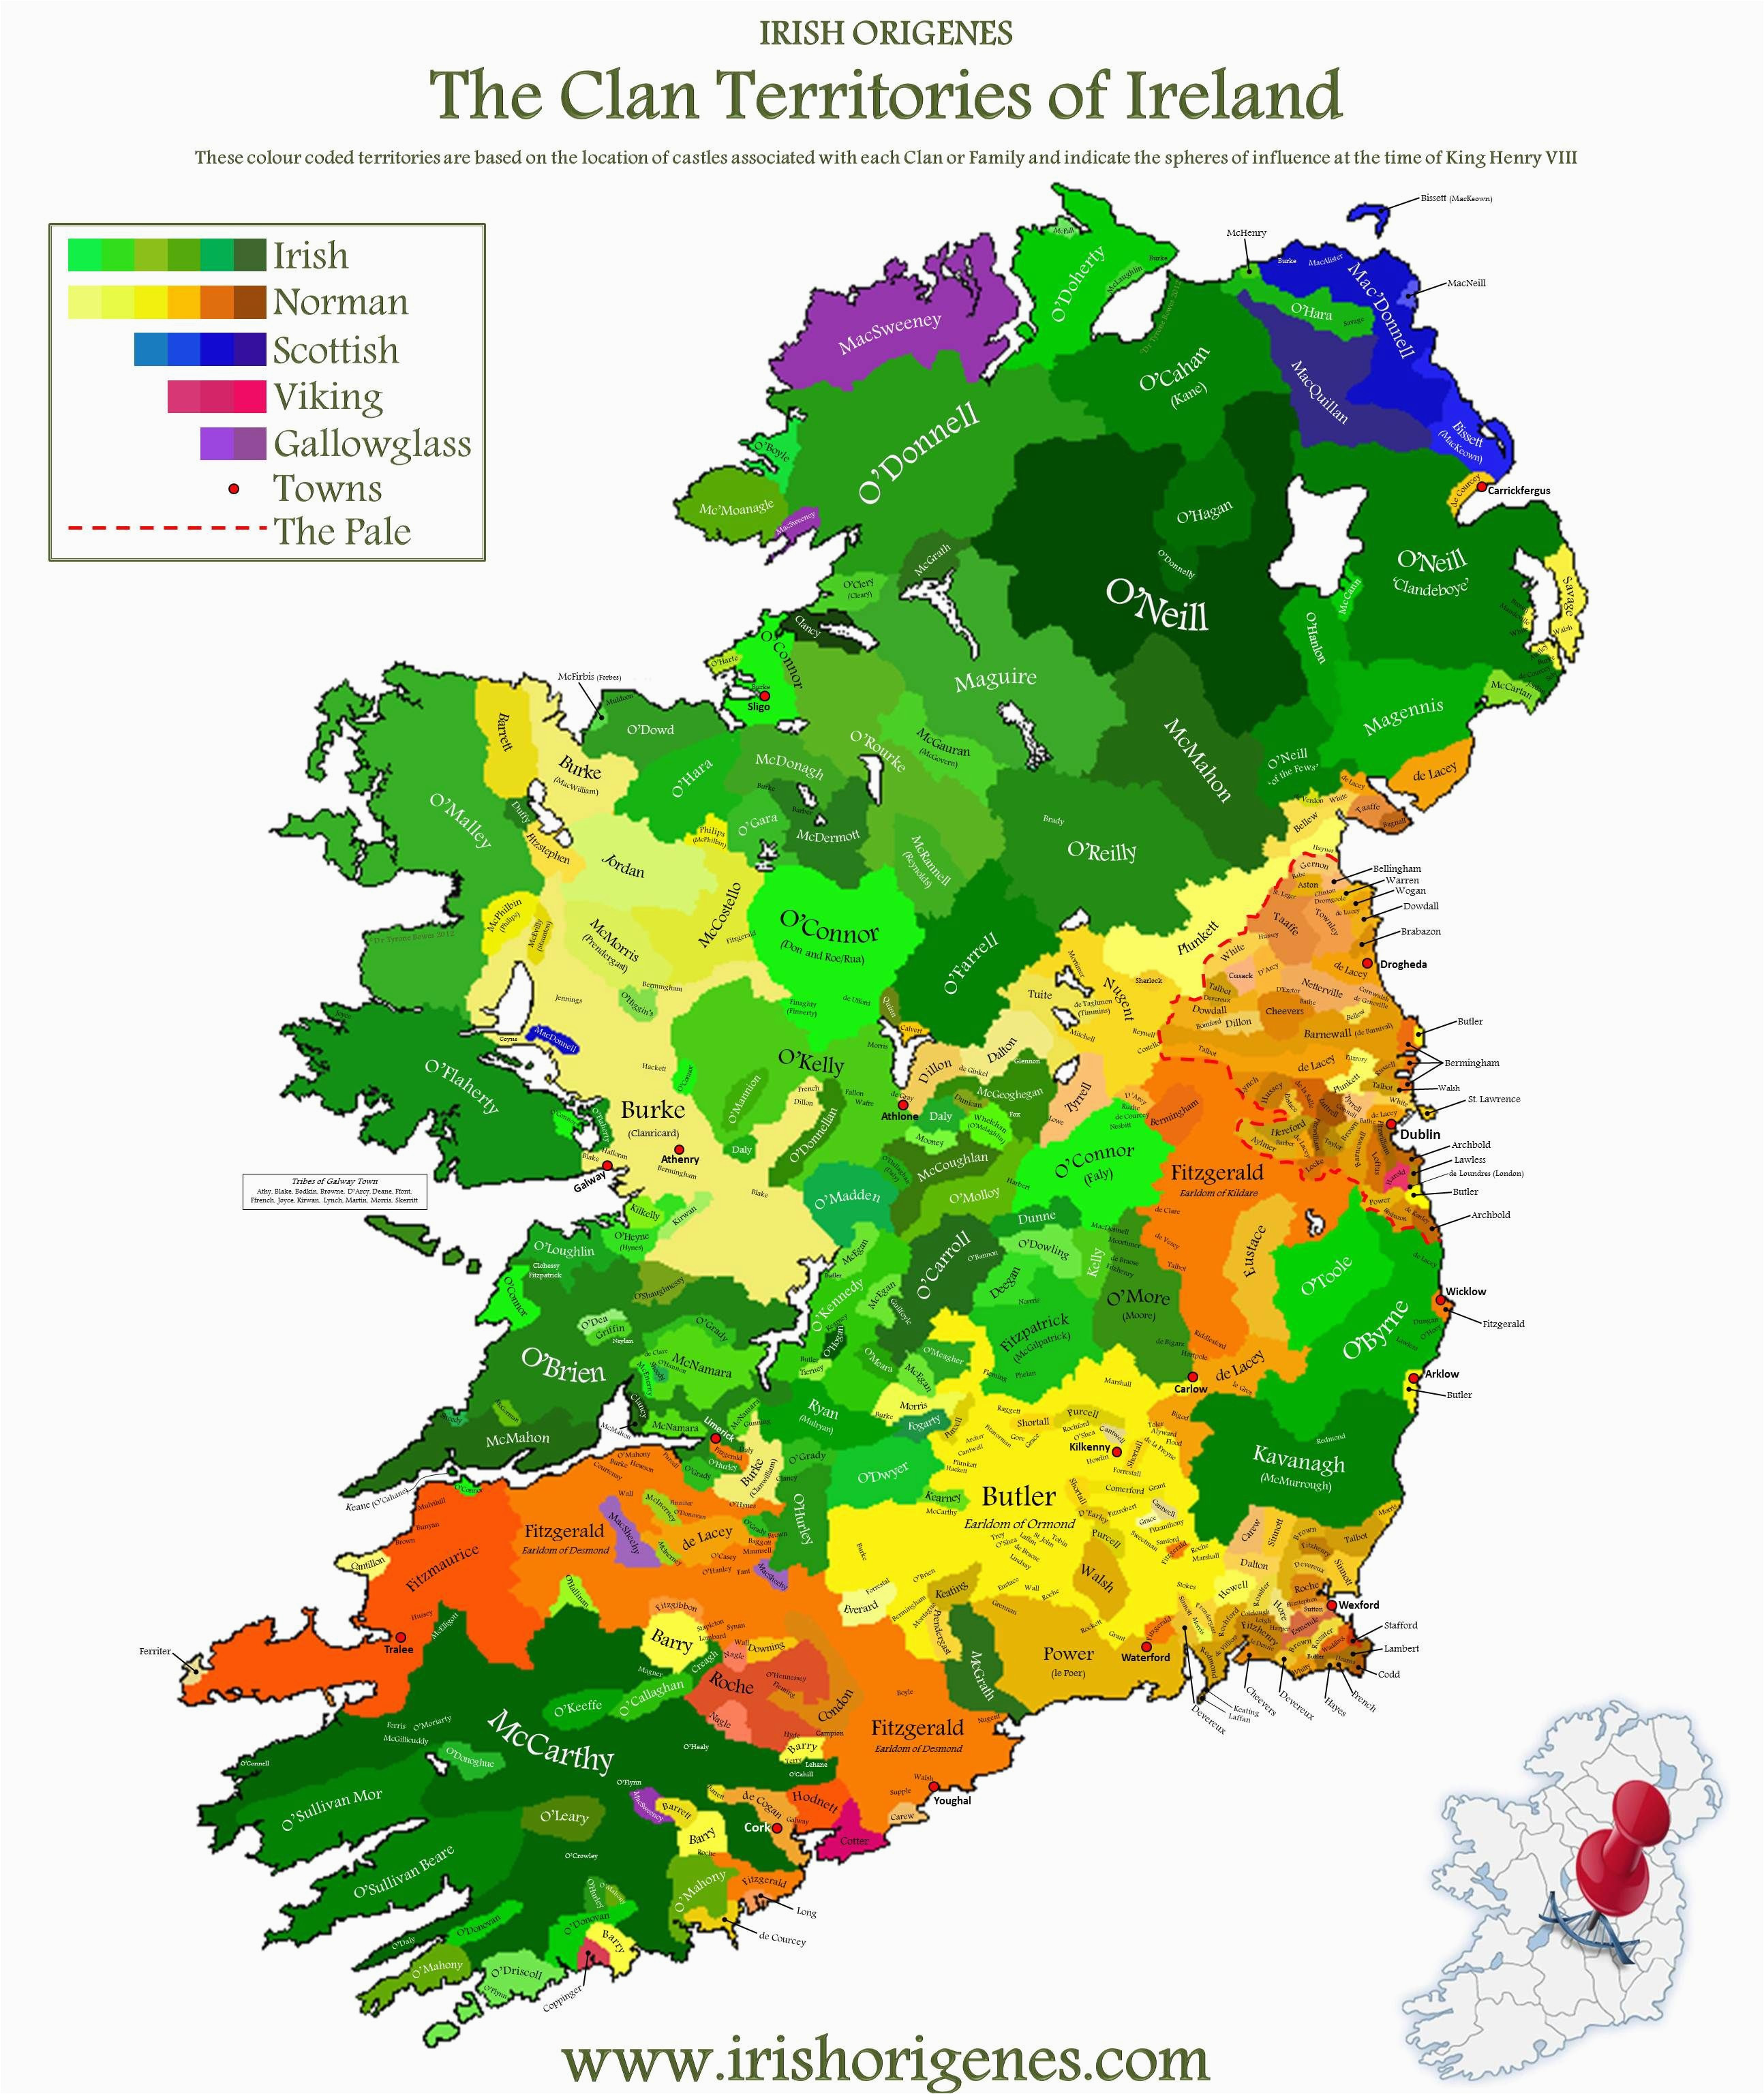 Surname Map Of Ireland Pin by Retro Estate Sales On Speak Of A Wolf Battle Of Knockdoe